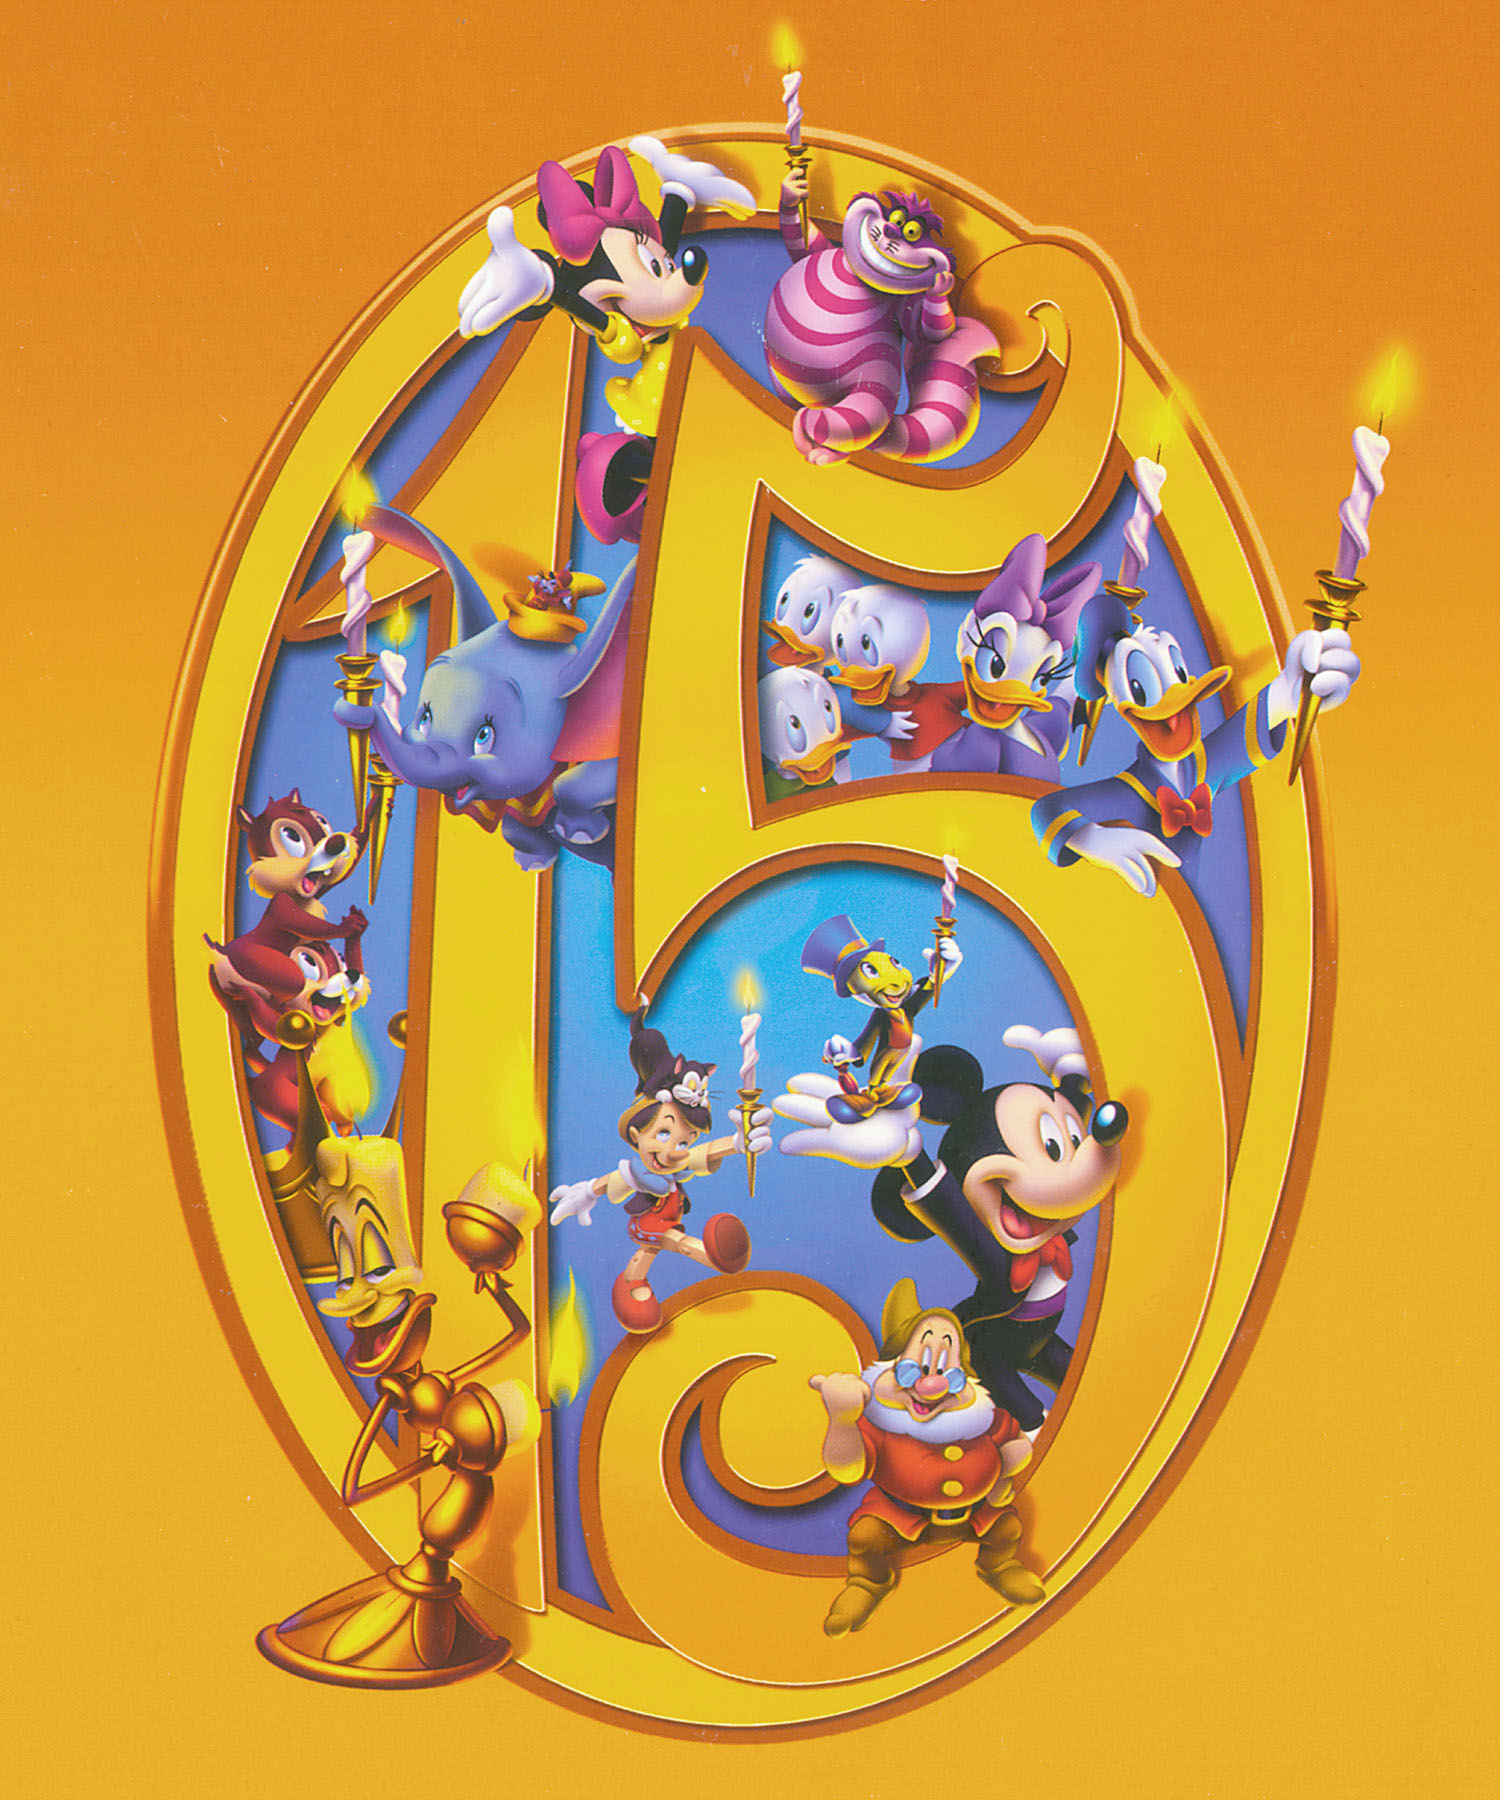 EURO-DISNEY 15TH YEAR CATALOG - CLICK HERE >